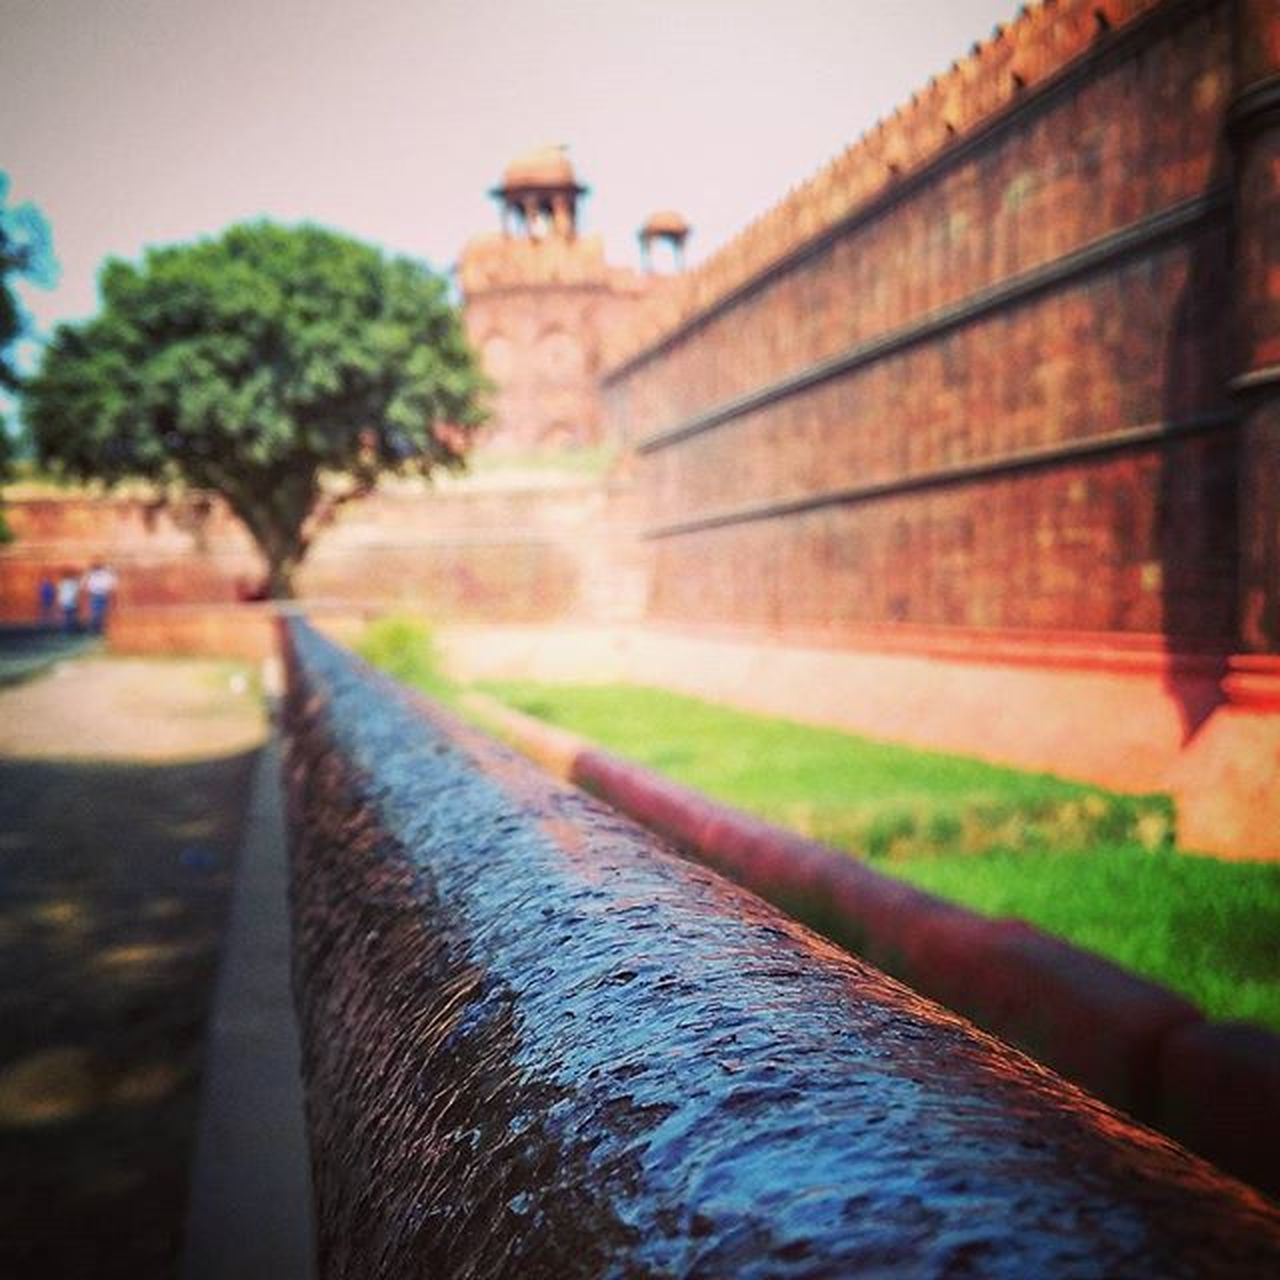 Redfort Fortwalls India Impressive Military Kings &queens Architecture Ancienthistory Intheblur Macroshot Angled